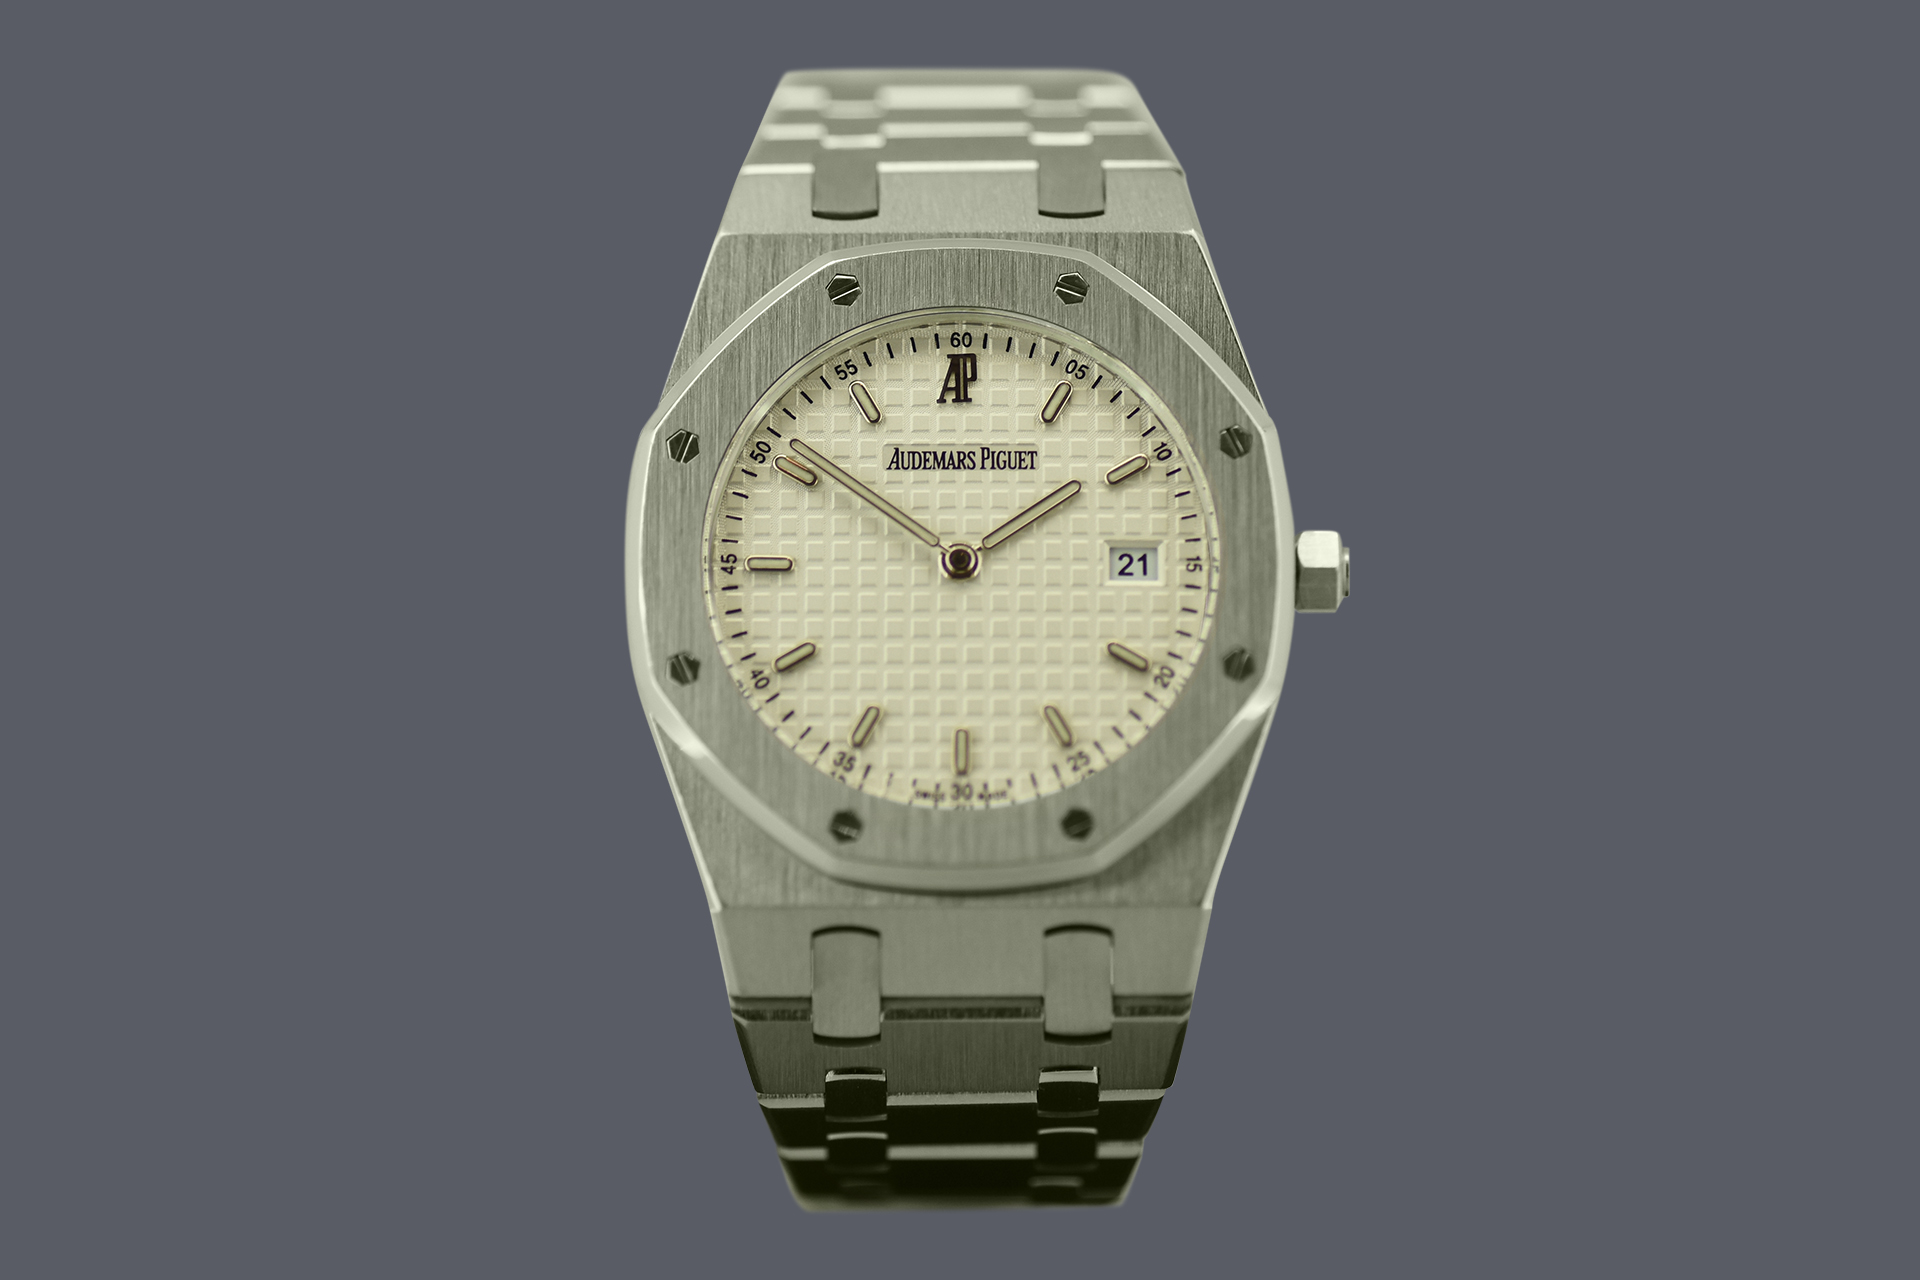 Audemars Piguet Royal Oak Ultra Thin Michael Bosman Watch Site